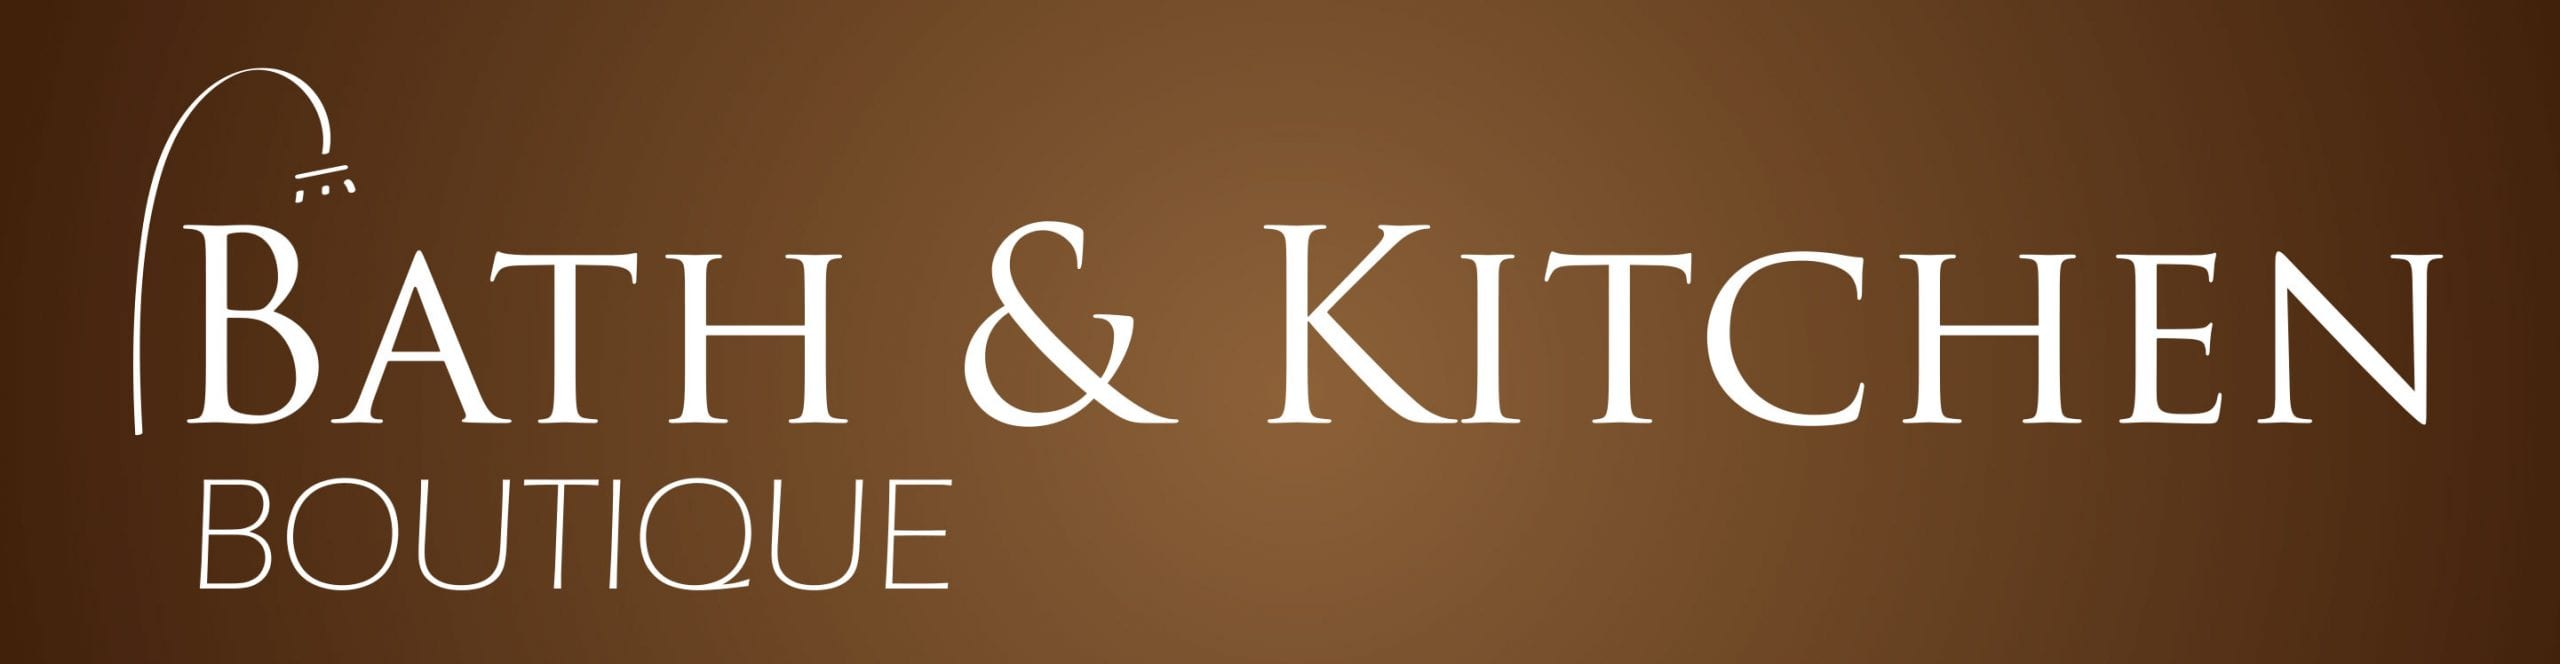 Bath & Kitchen Boutique